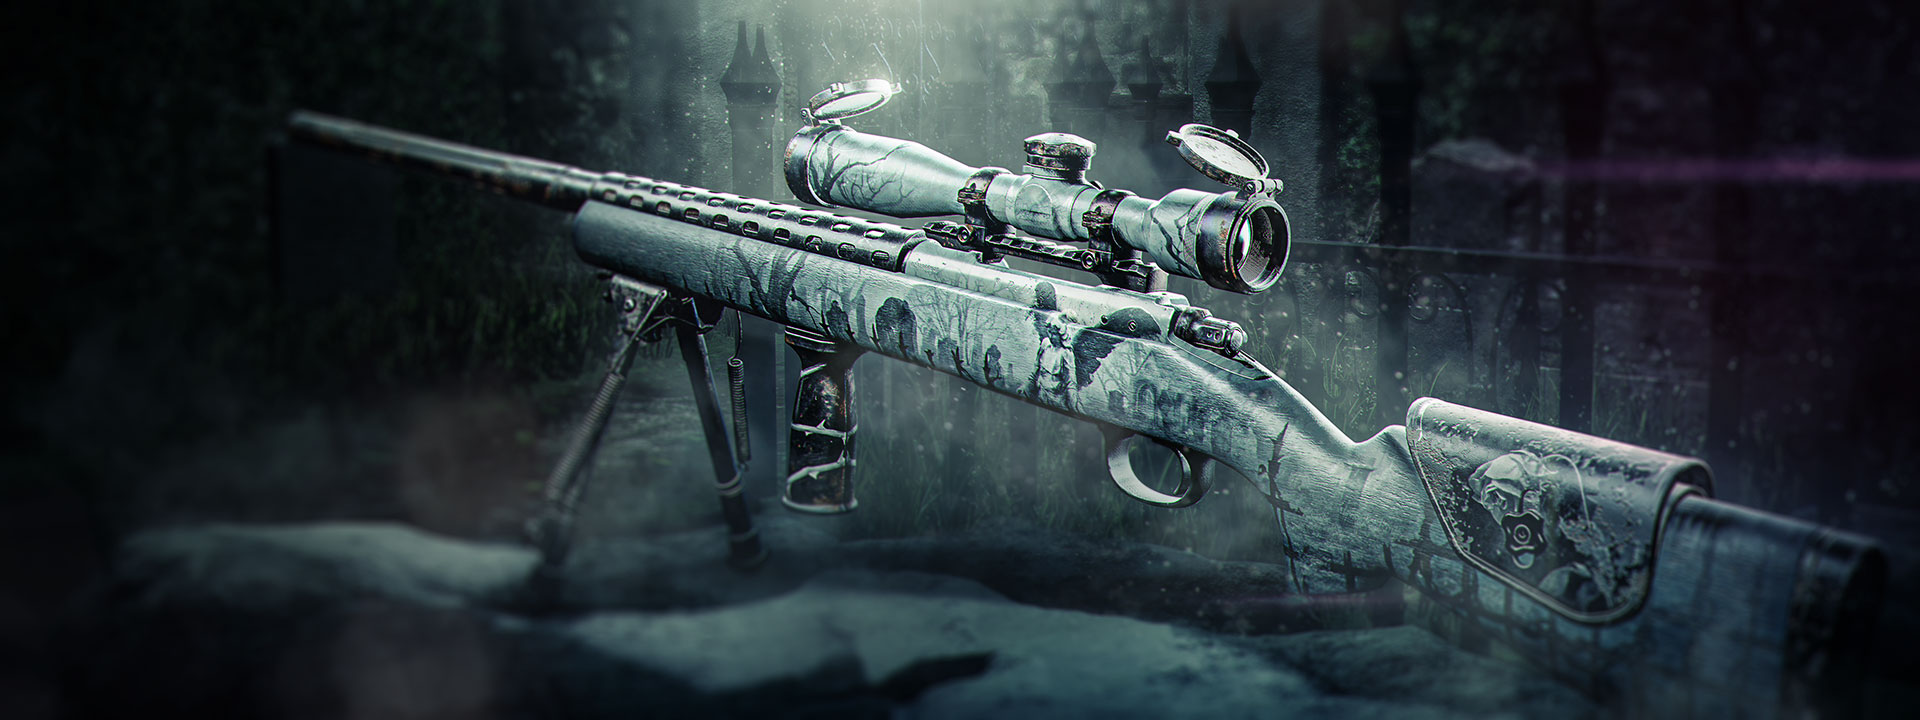 The Cemetary Thorn sniper rifle, looking grave